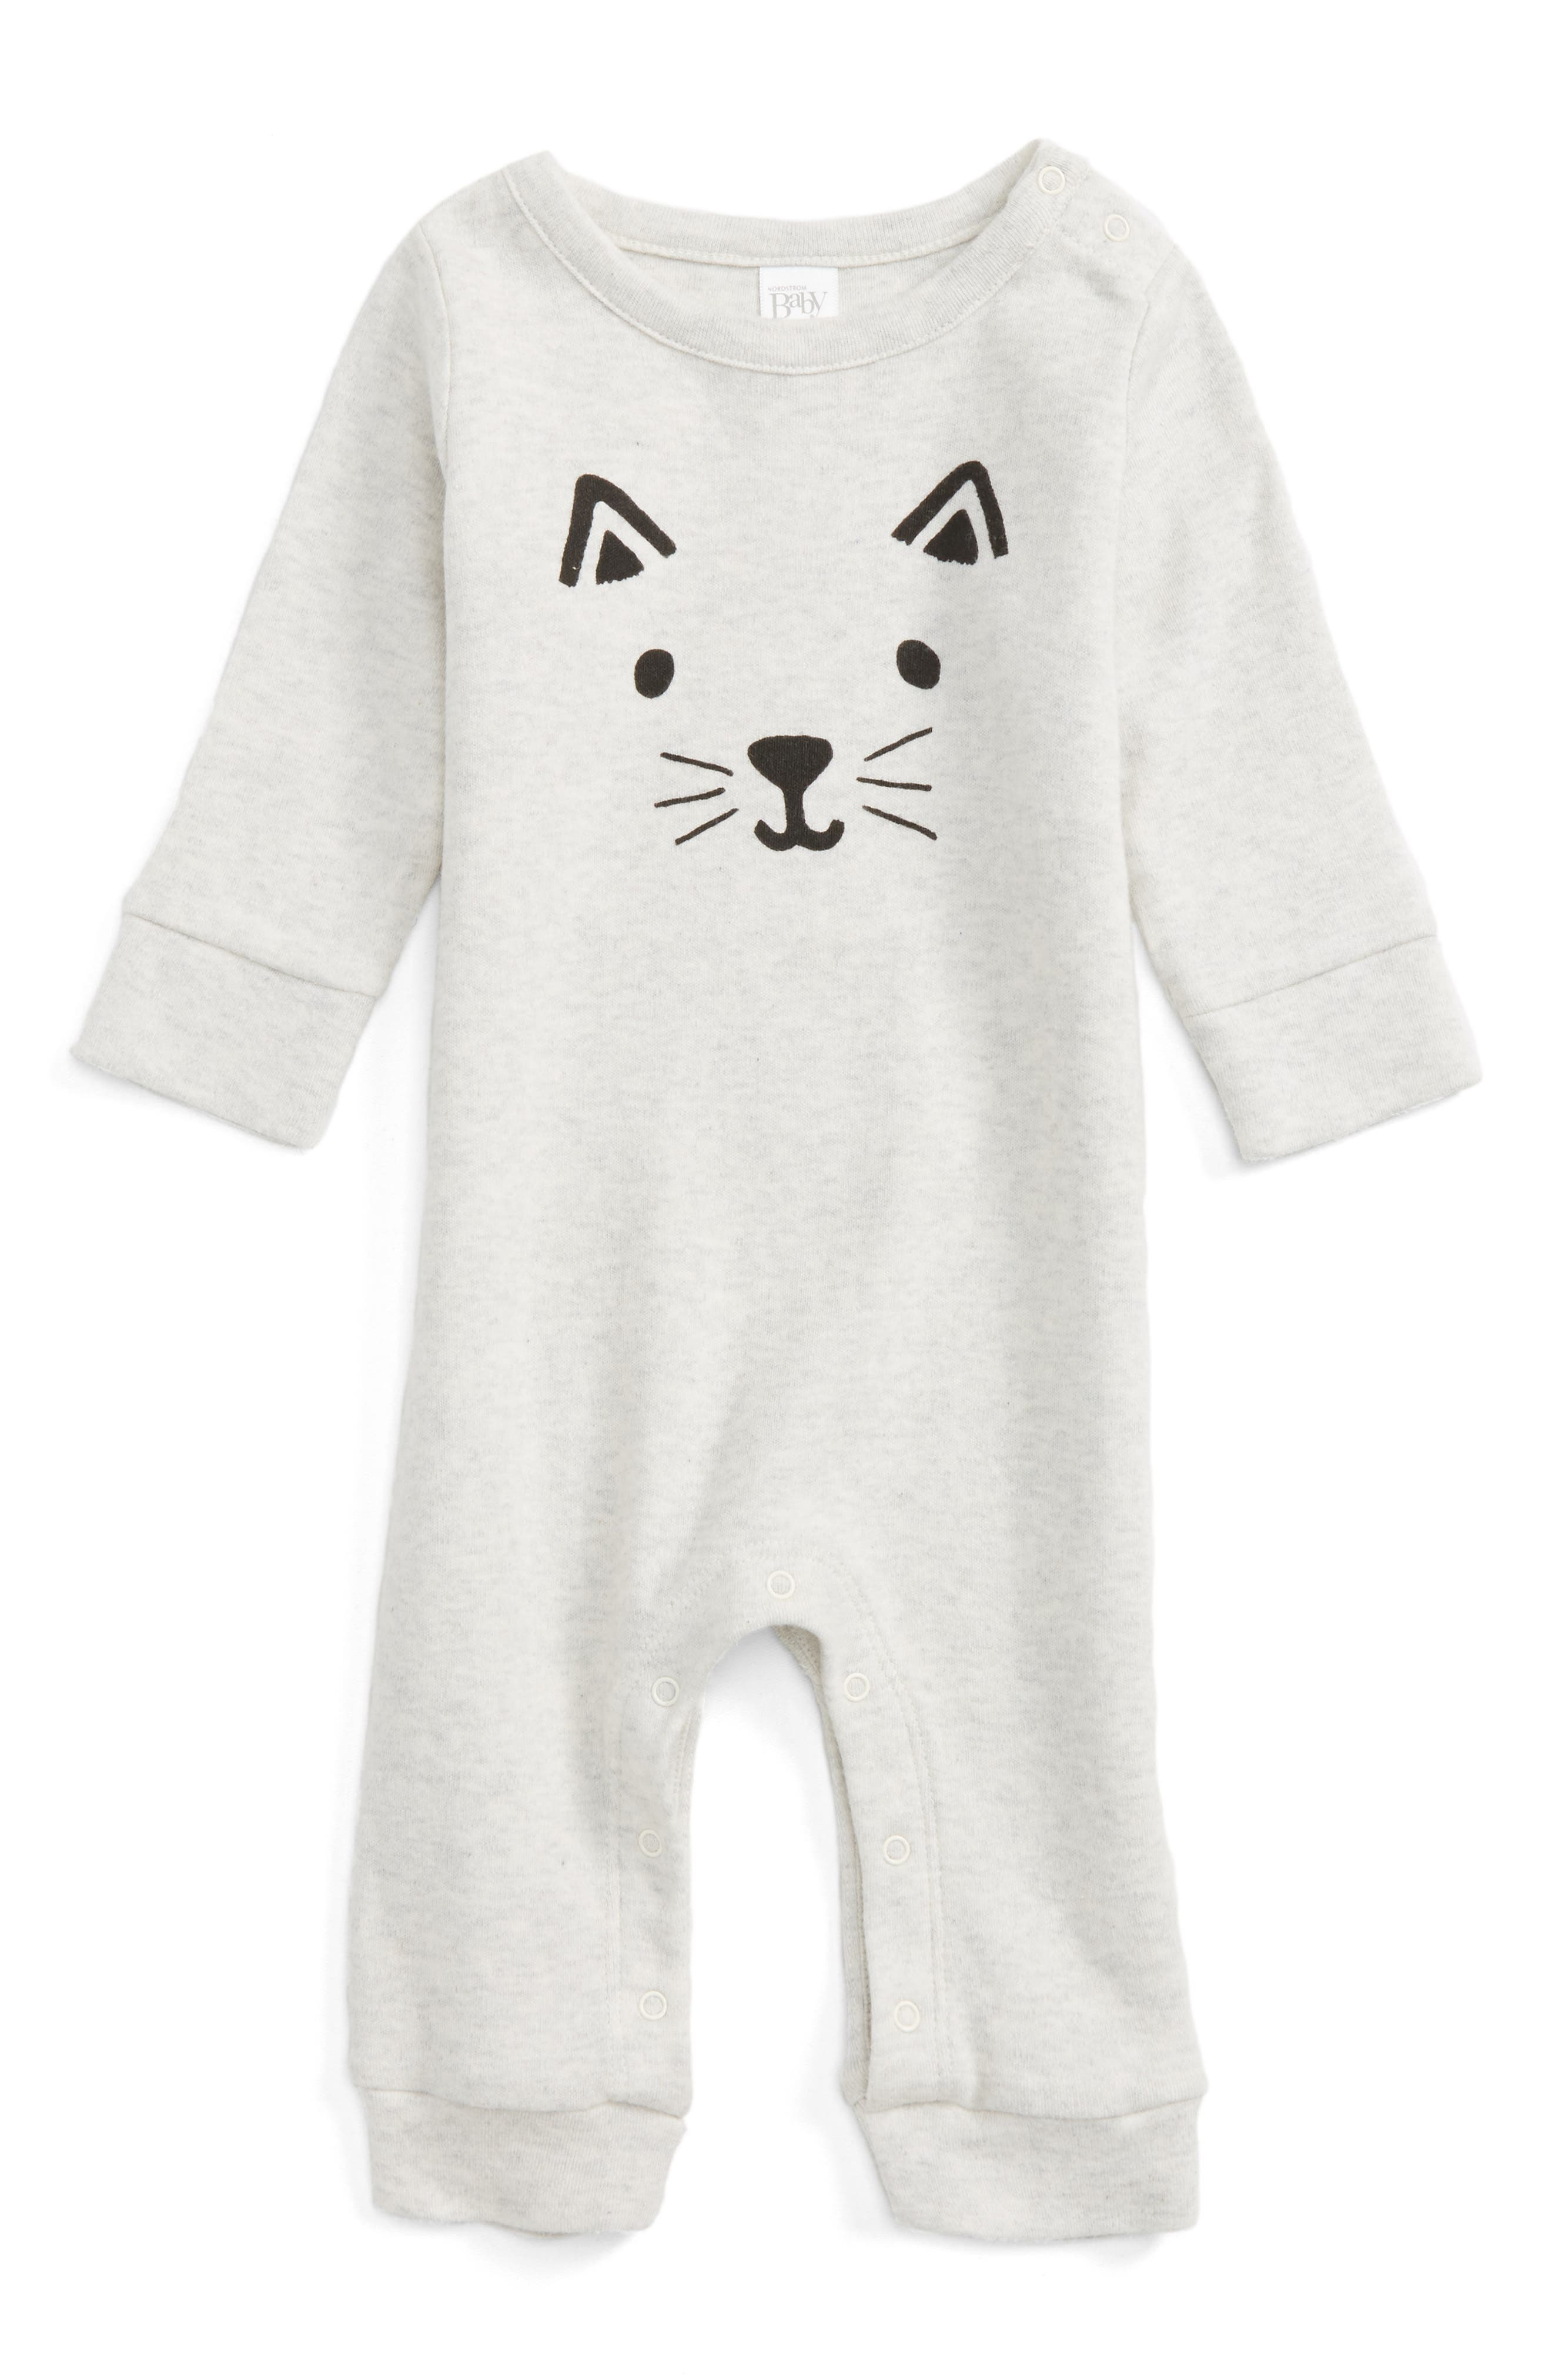 Alternate Image 1 Selected - Nordstrom Baby Cat Face Romper (Baby)